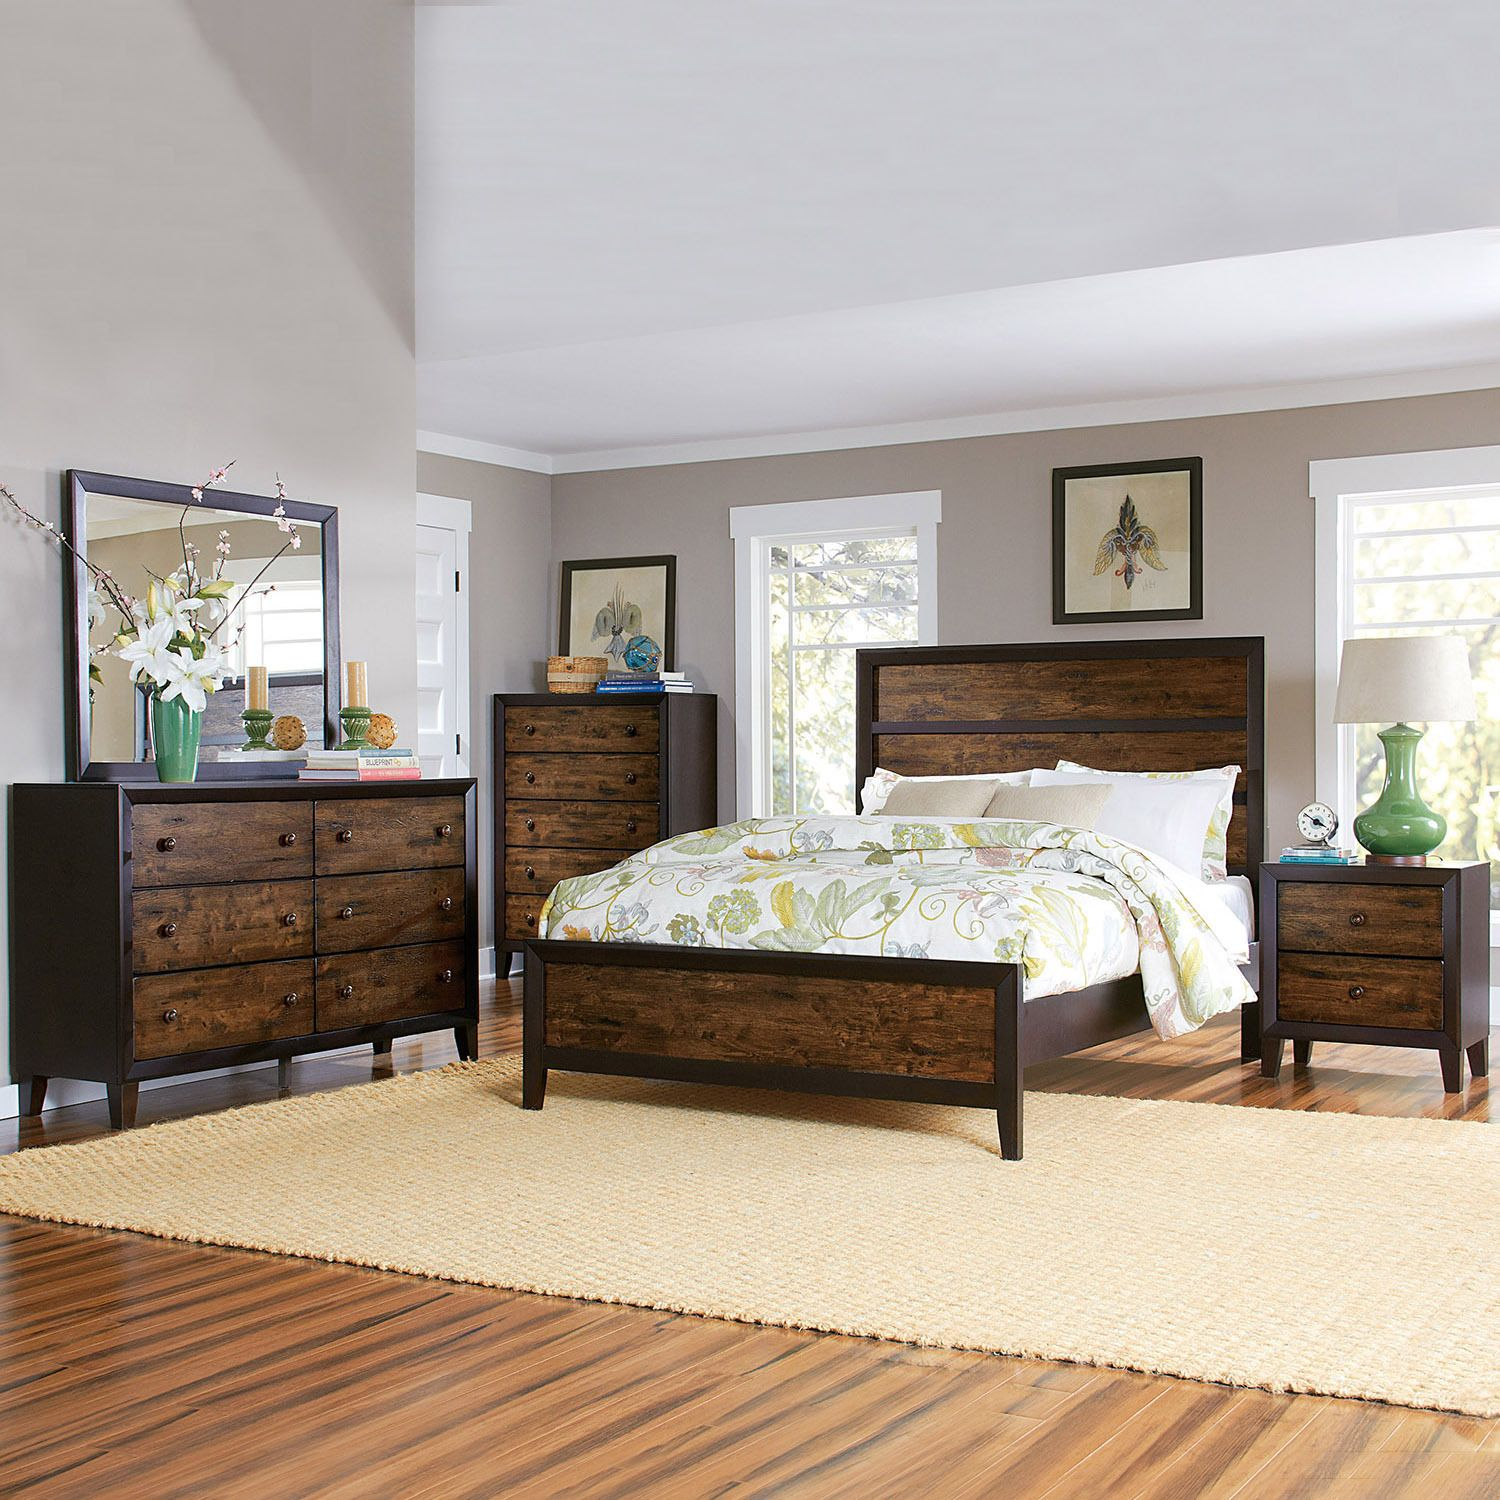 Draven espresso drifted oak piece bedroom set decor pinterest